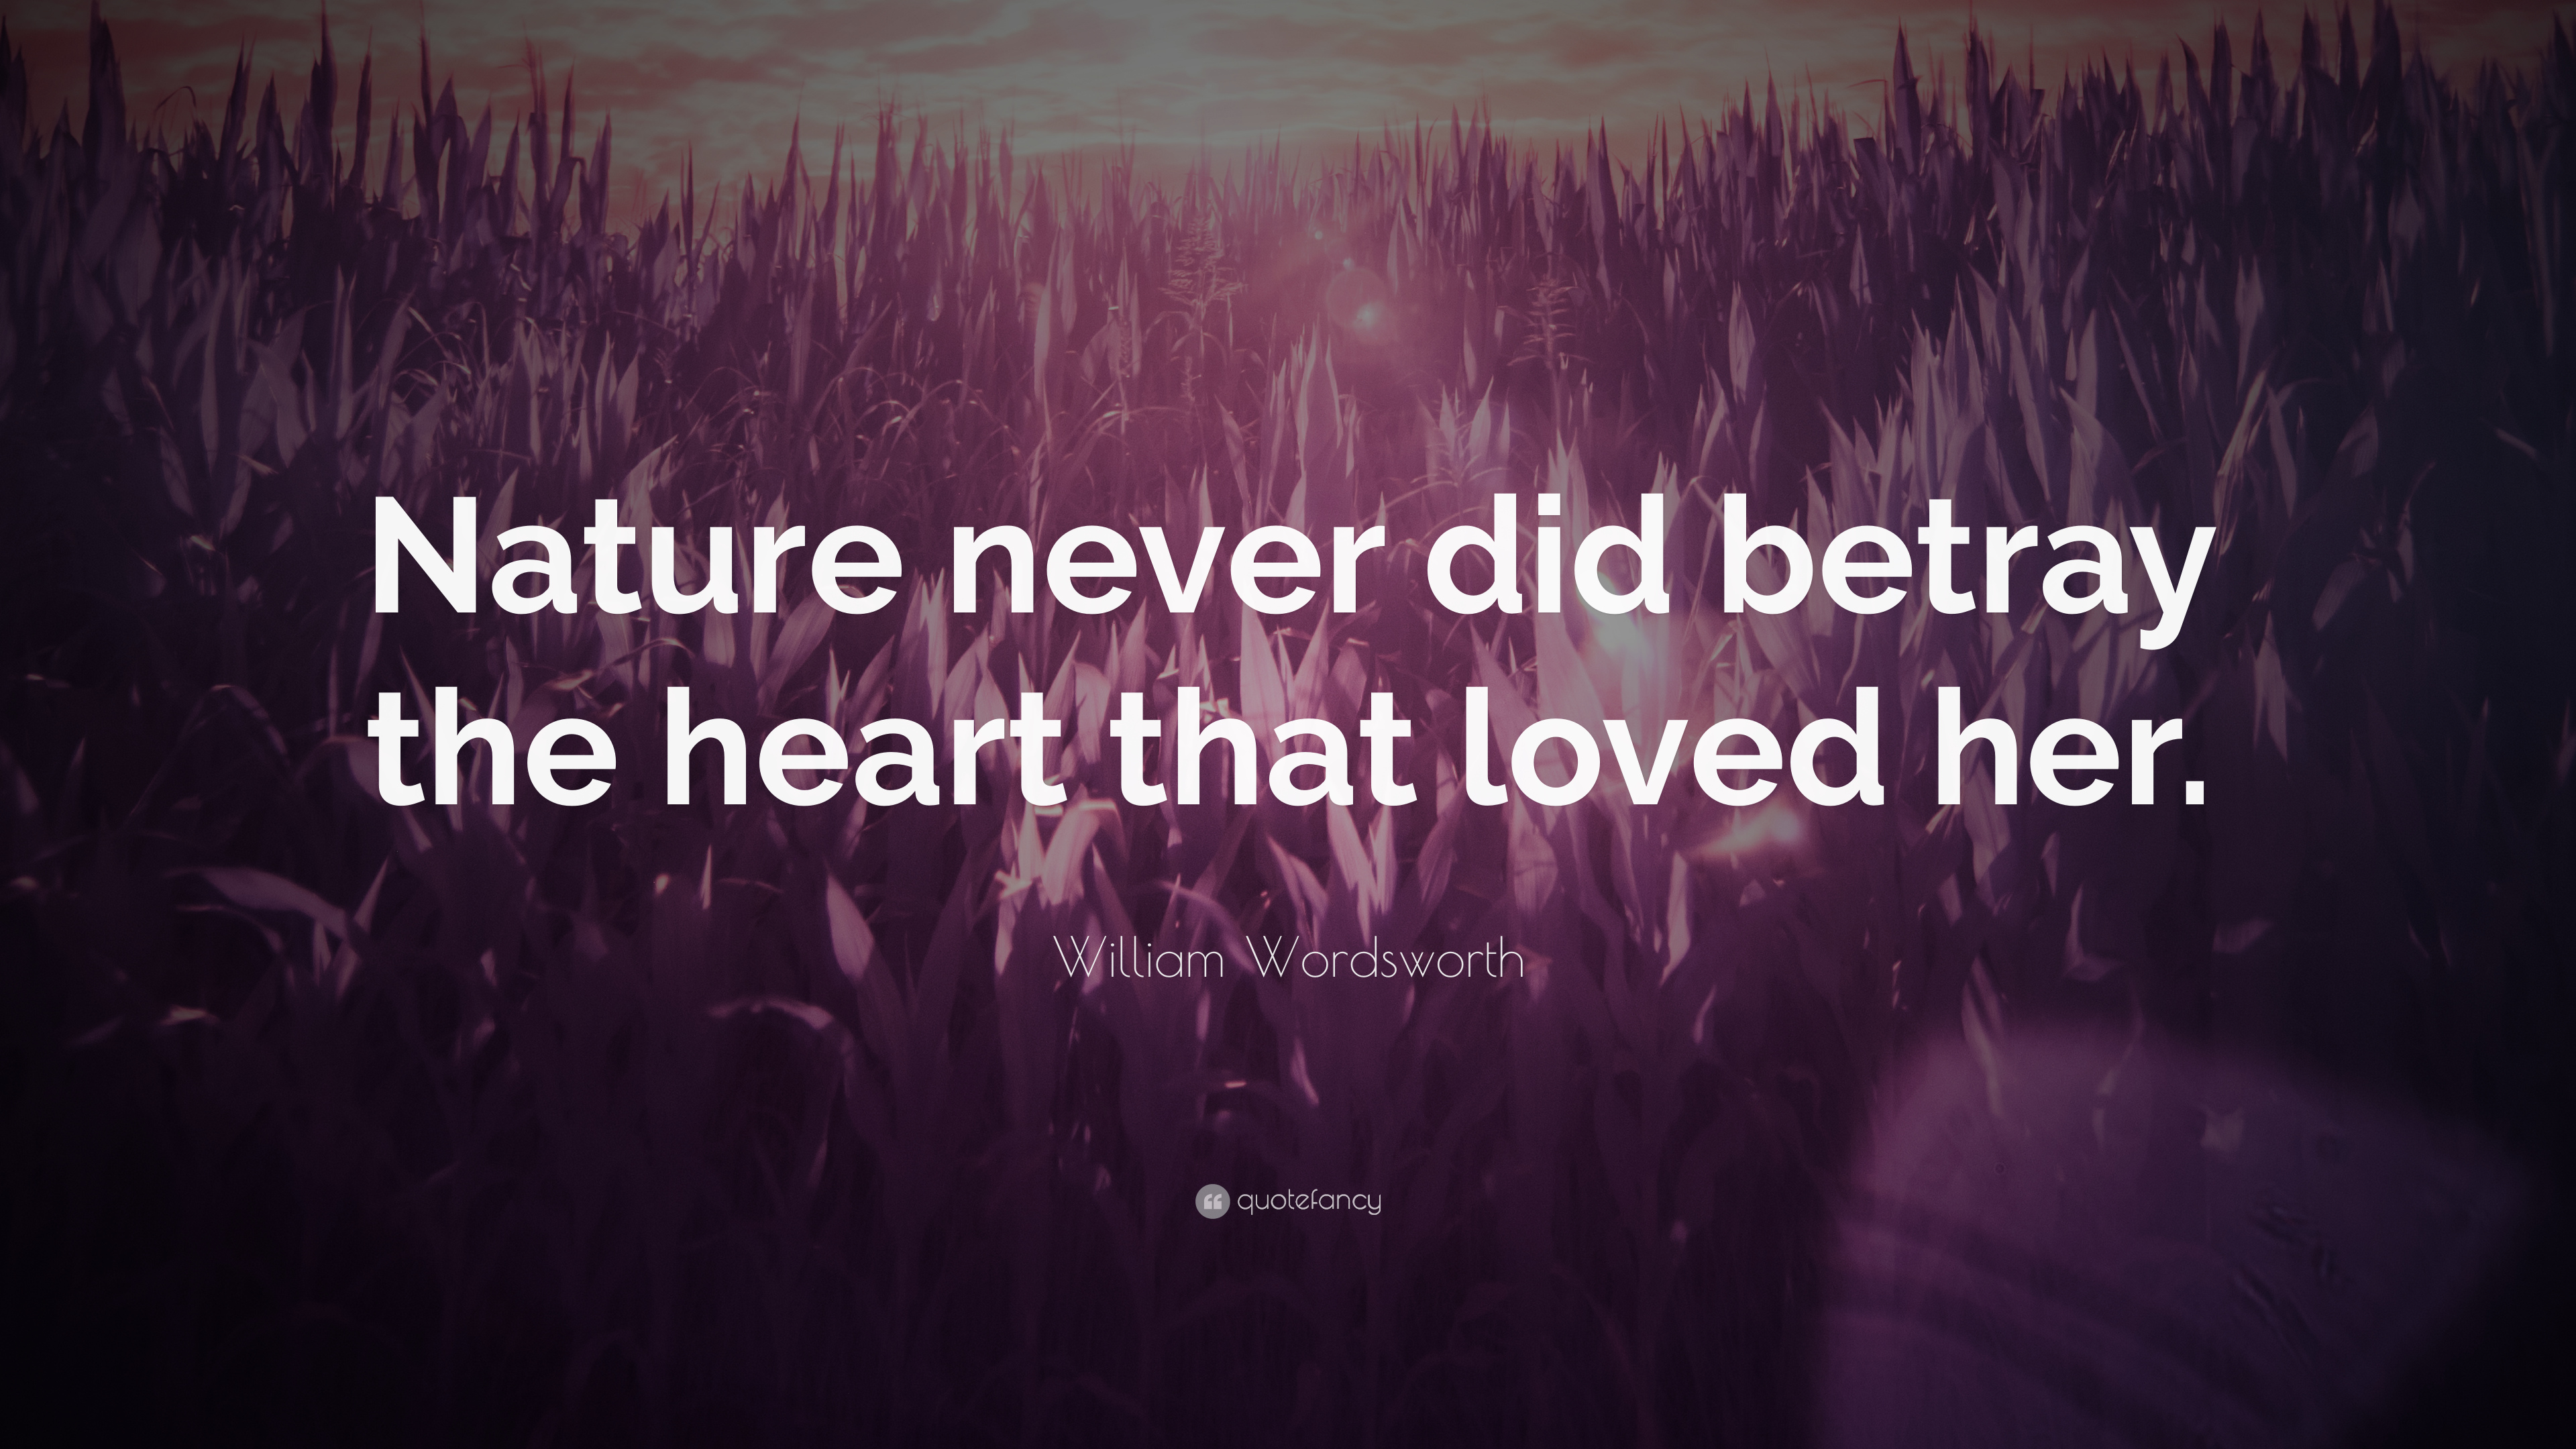 nature never did betray the heart that loved her